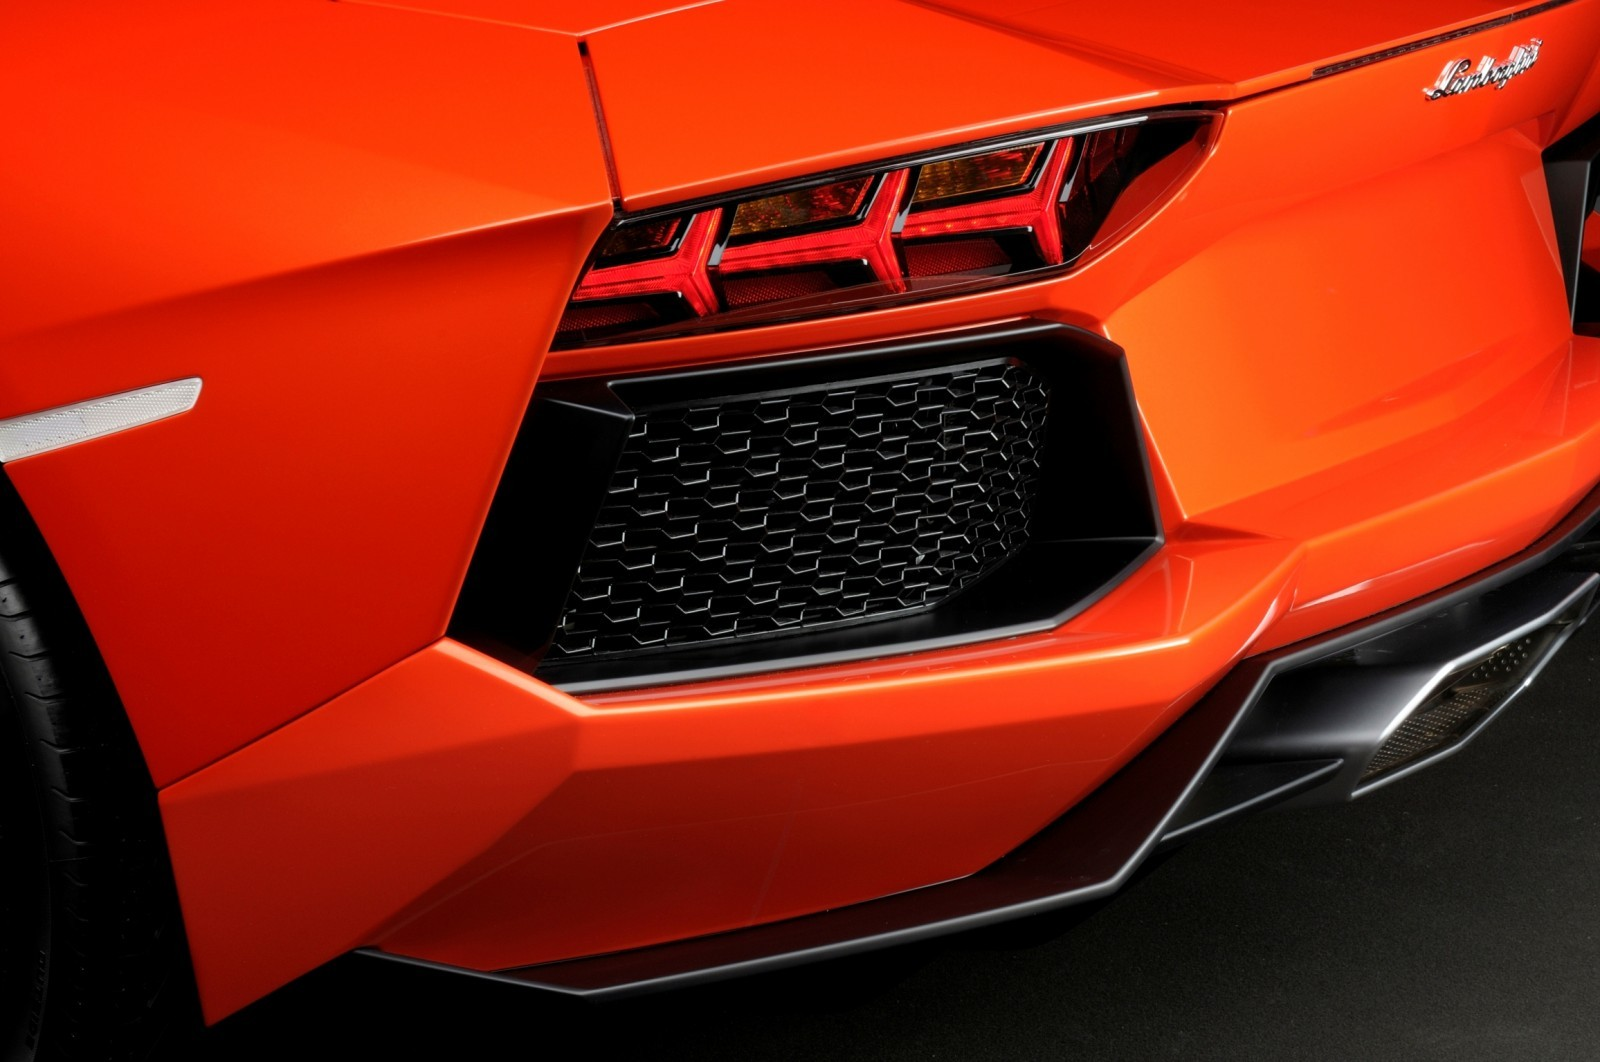 Hypercar Showcase - 2014 Lamborghini Aventador Trumped Only By Aventador J and Aventador Roadster 5